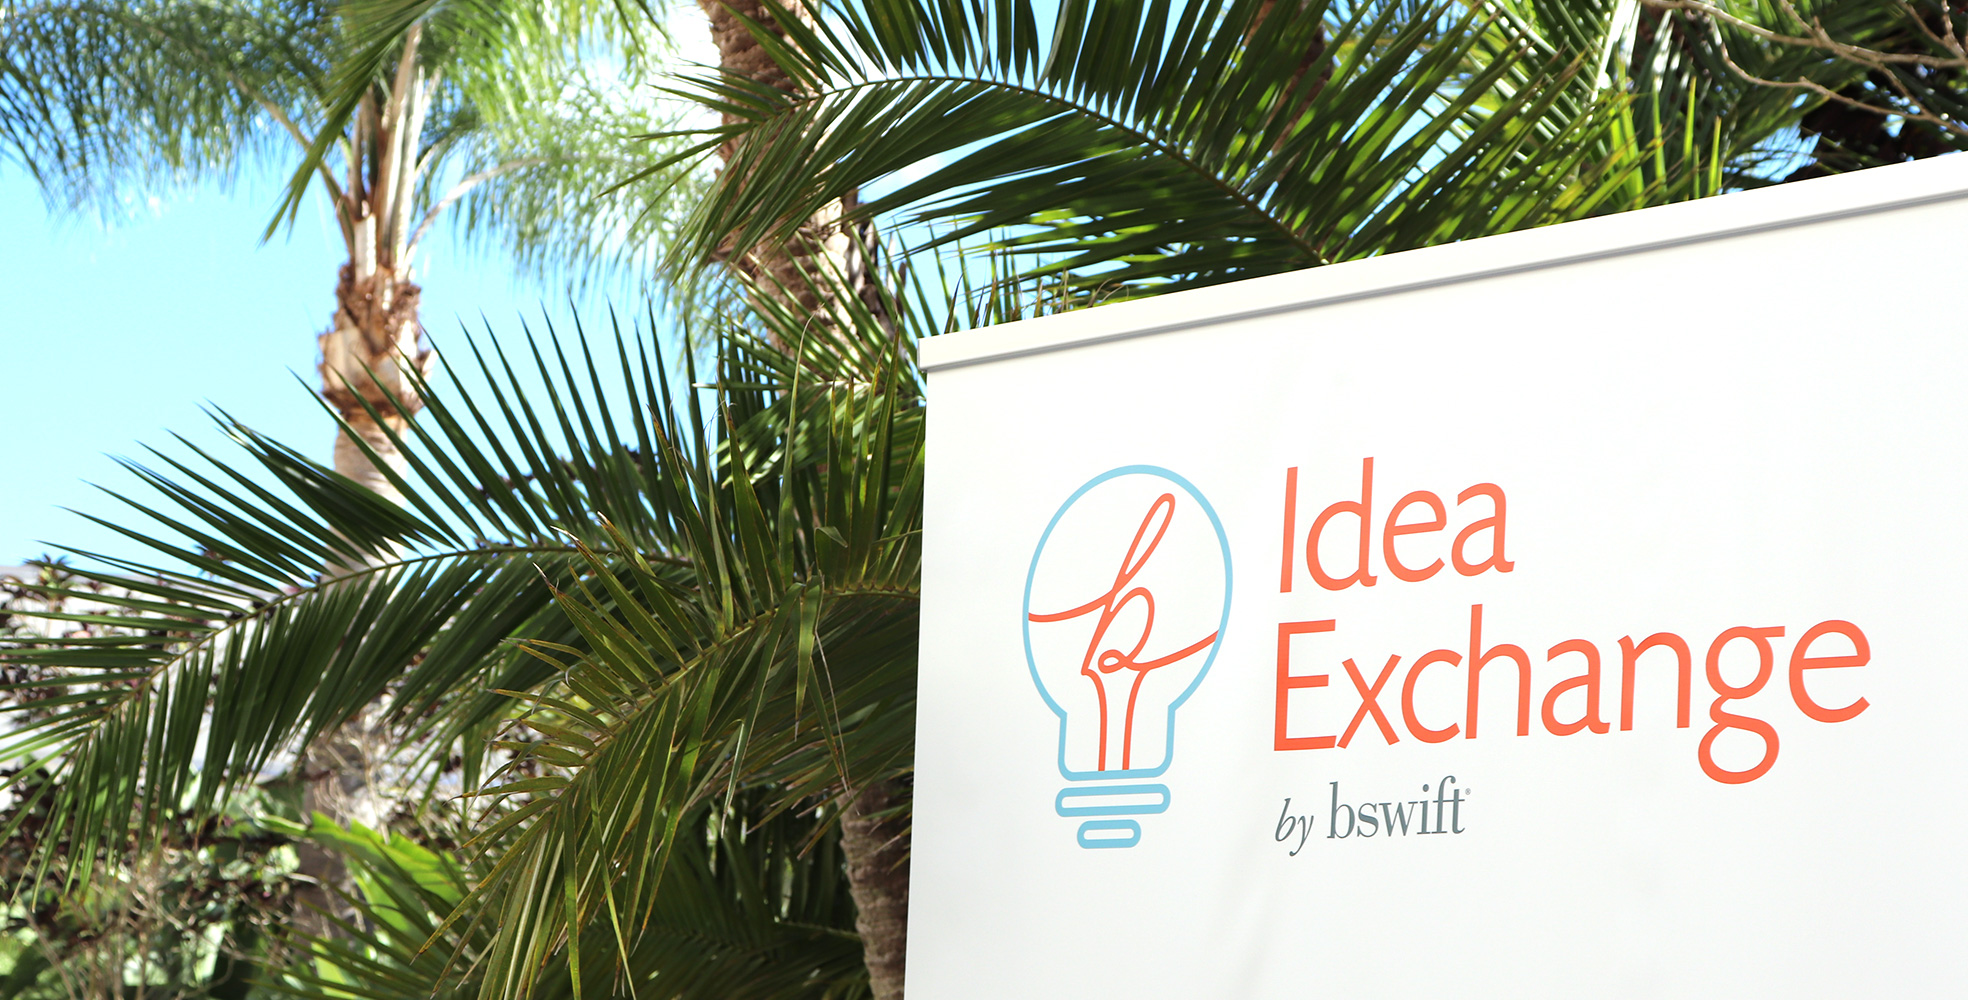 Idea Exchange 2019 Sign and Palm Trees